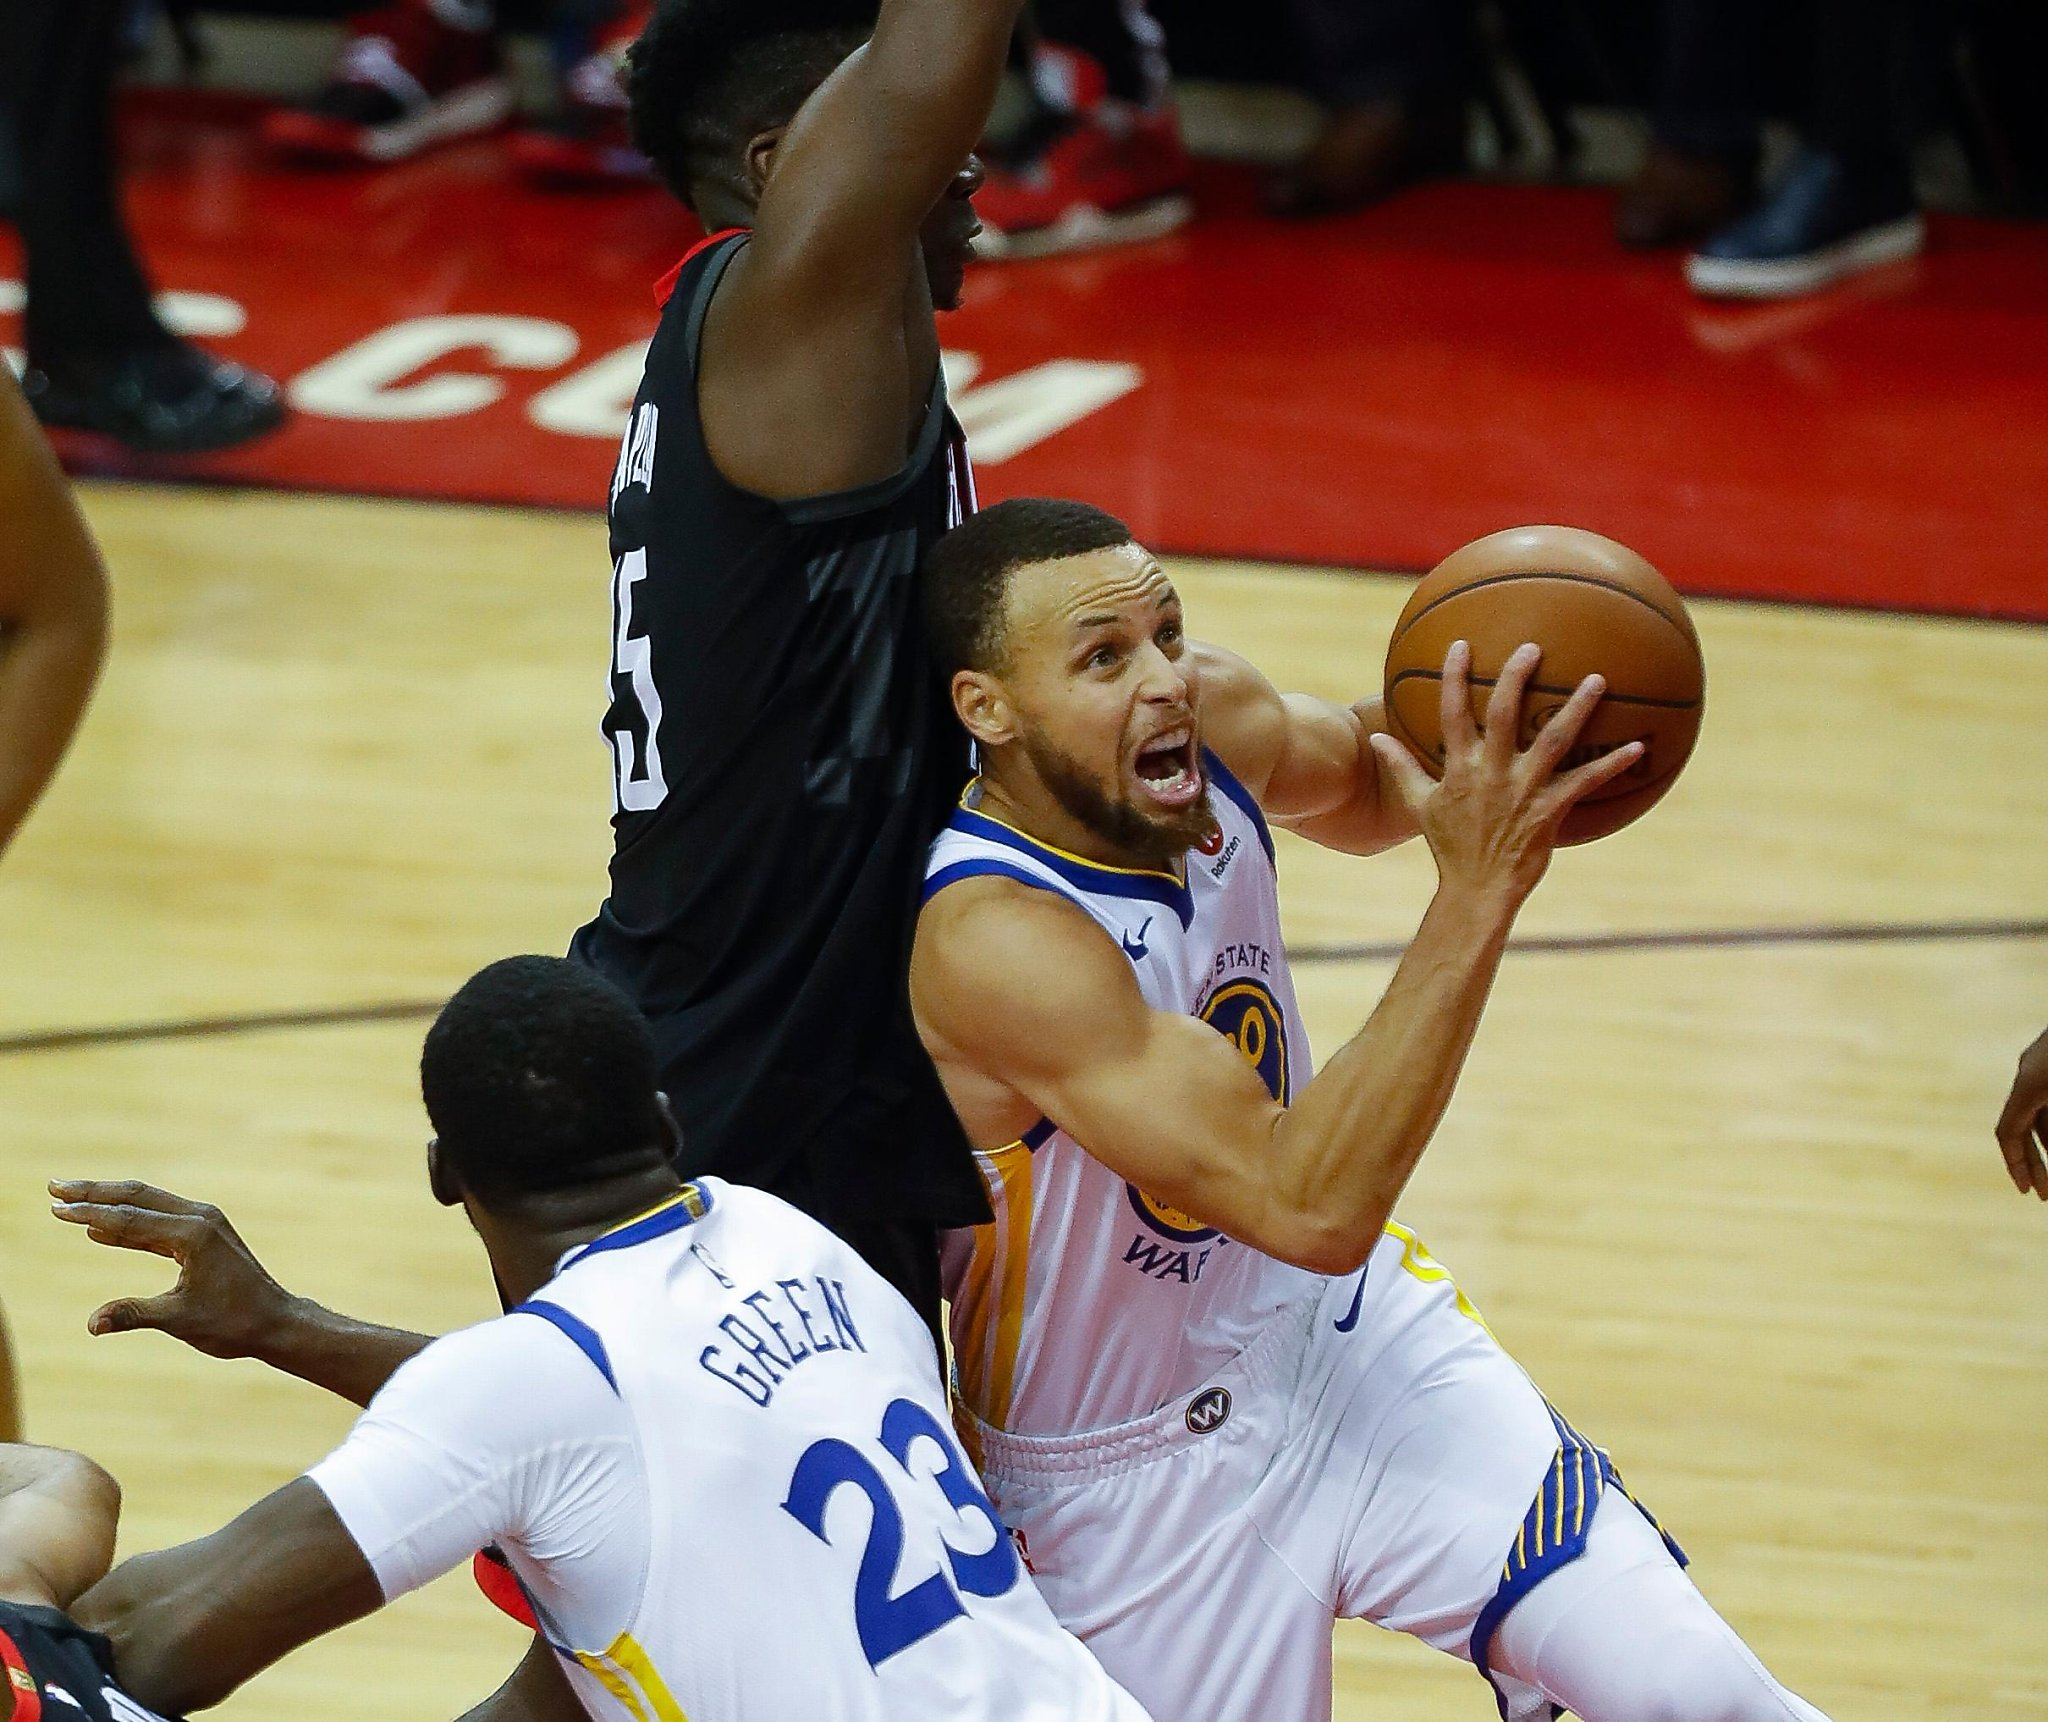 Warriors Lose Big To Rockets: What's Wrong With Steph